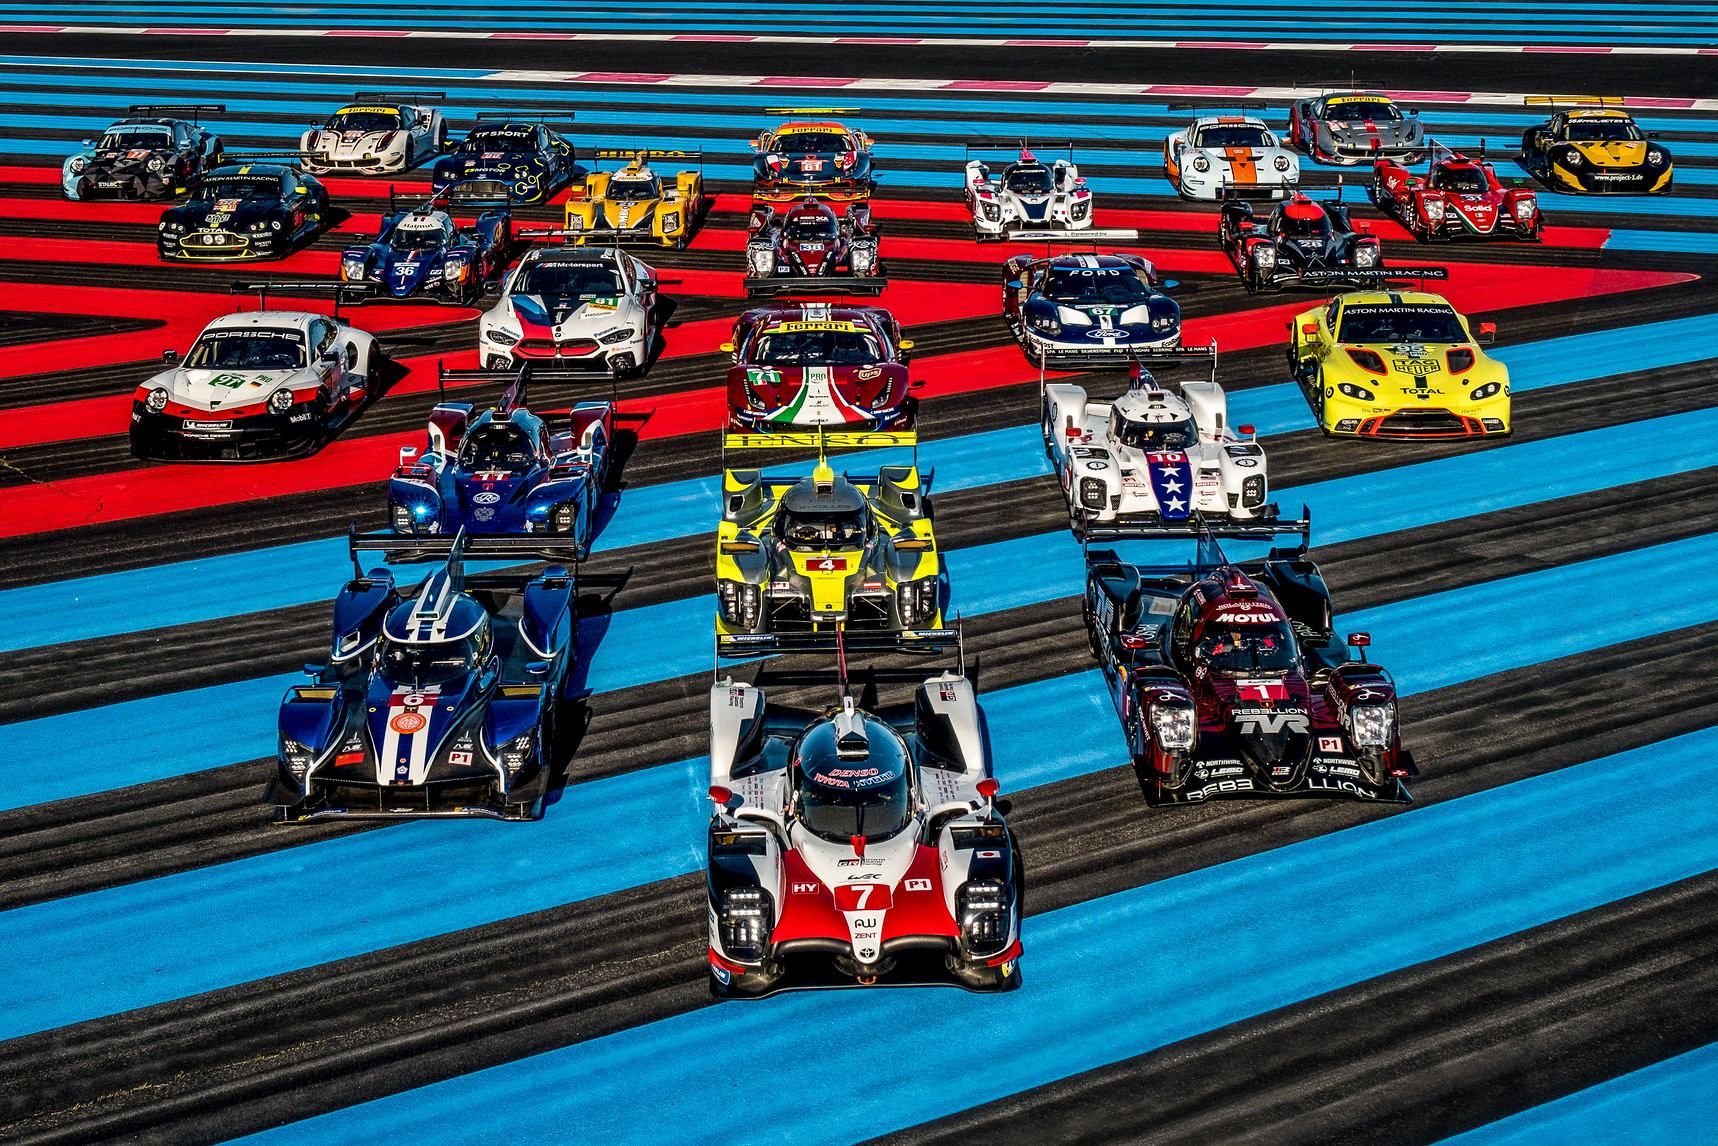 WEC action has begun for the Prologue! - FIA World ...